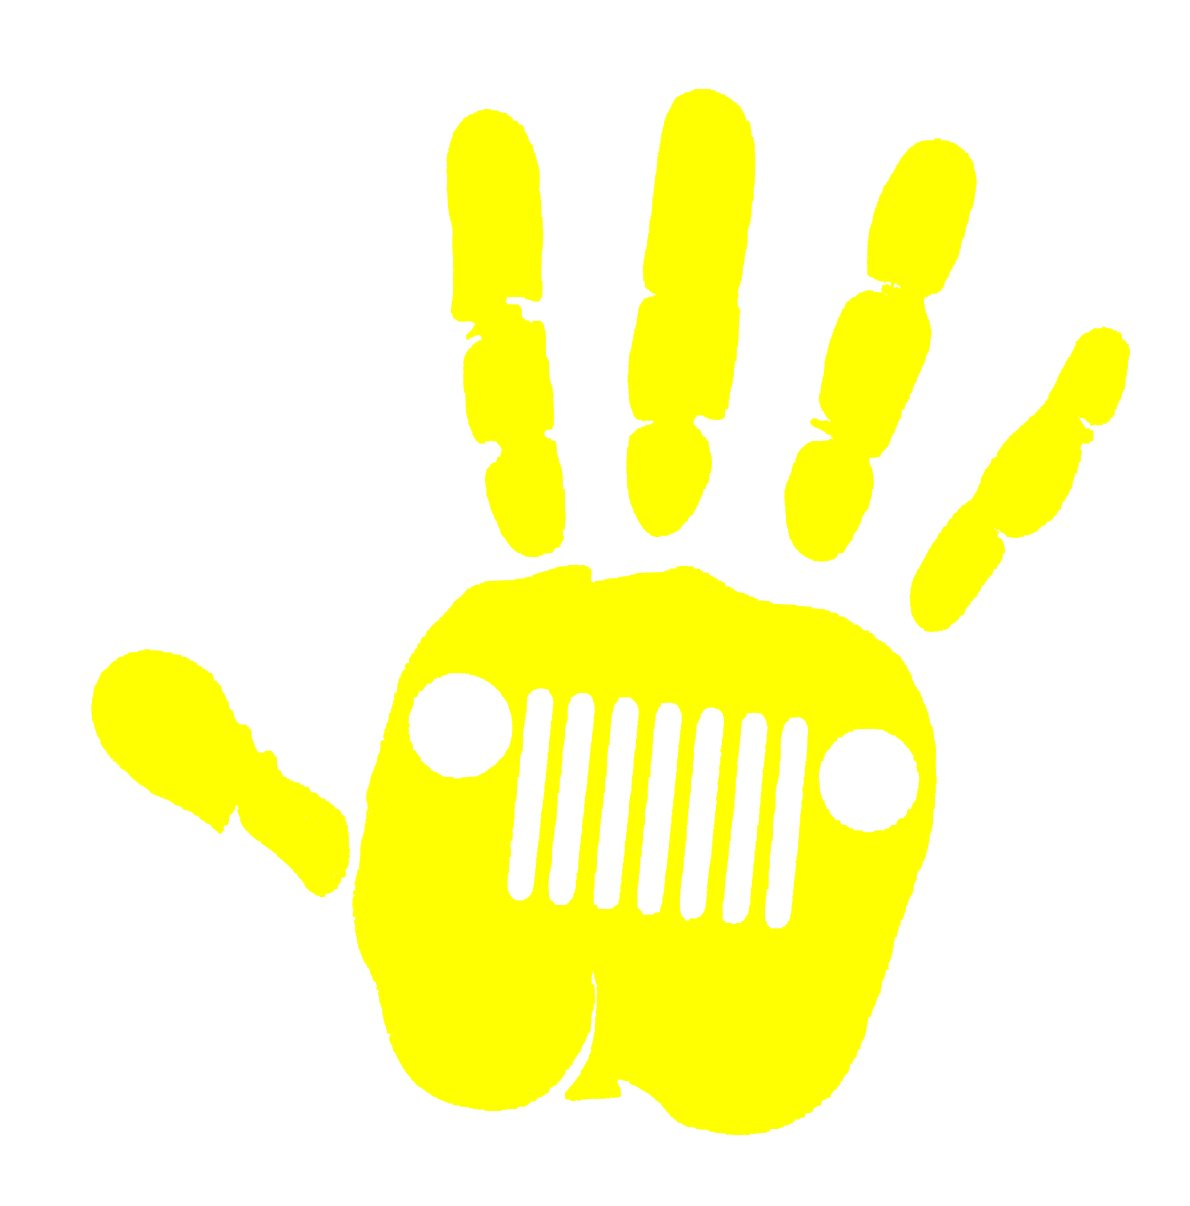 Jeep wave decal-yellow color